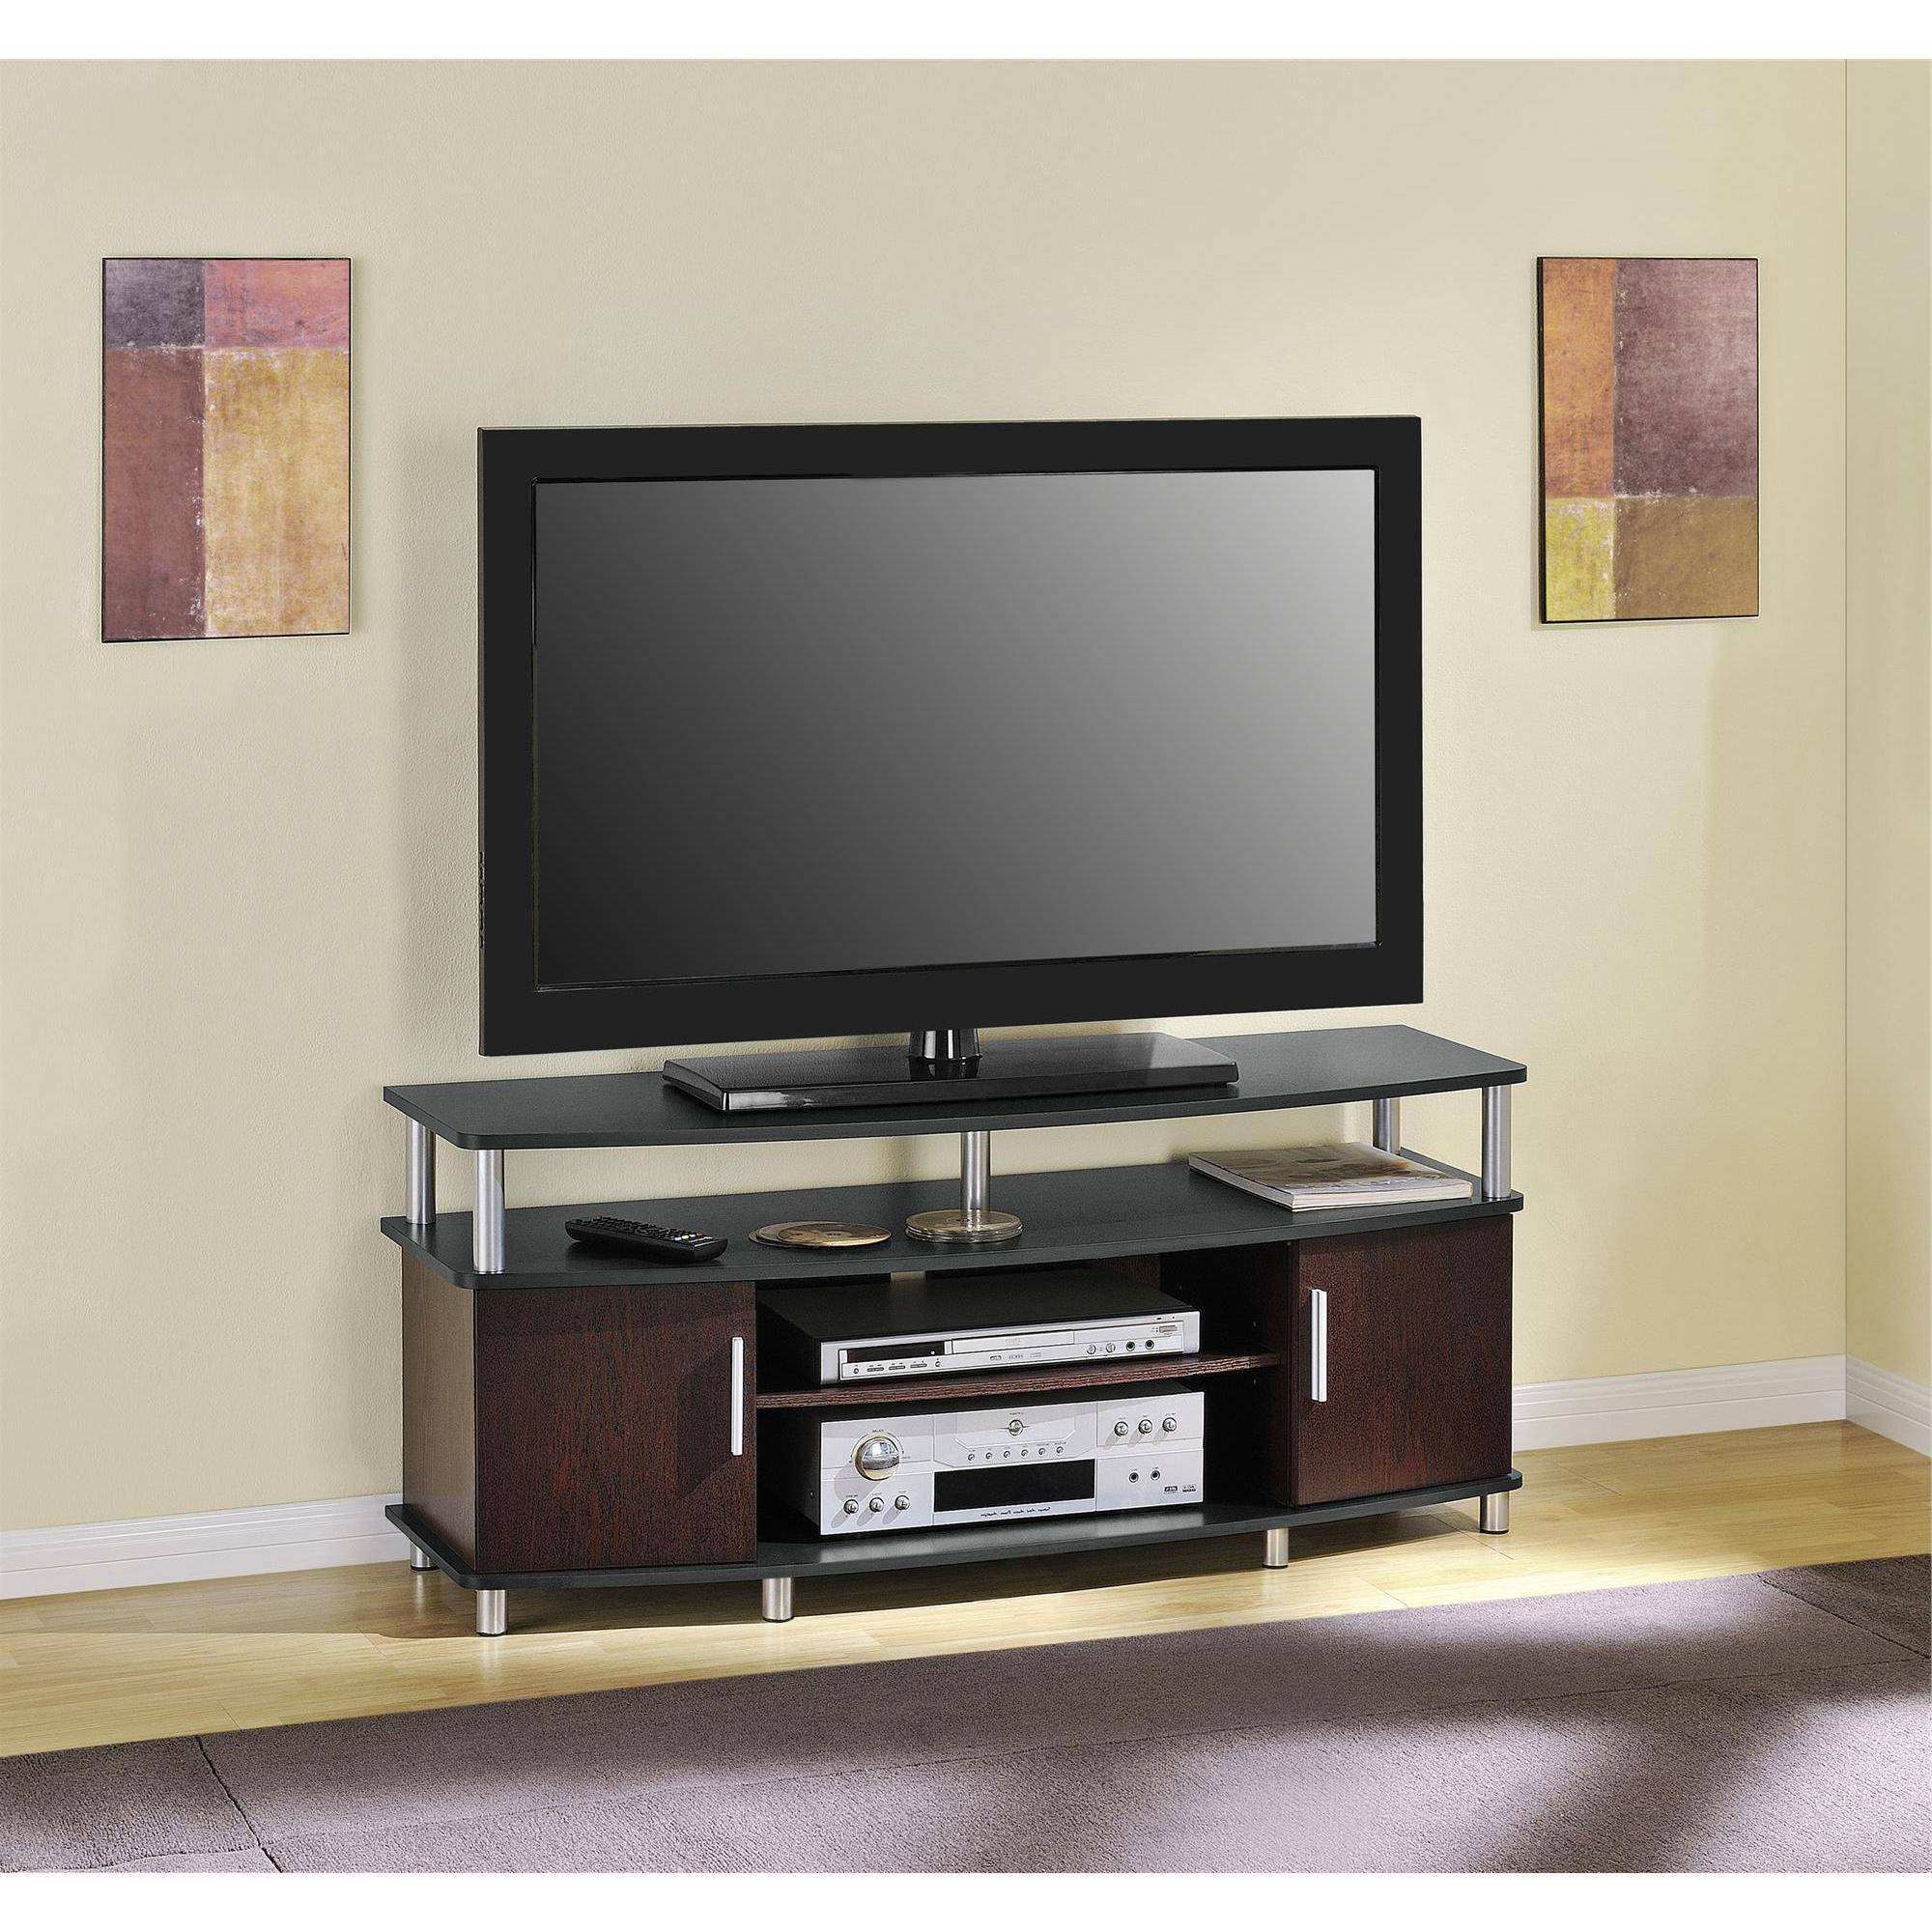 """Well Liked Unique Tv Stands For Flat Screens Inside Carson Tv Stand, For Tvs Up To 50"""", Multiple Finishes (View 15 of 20)"""